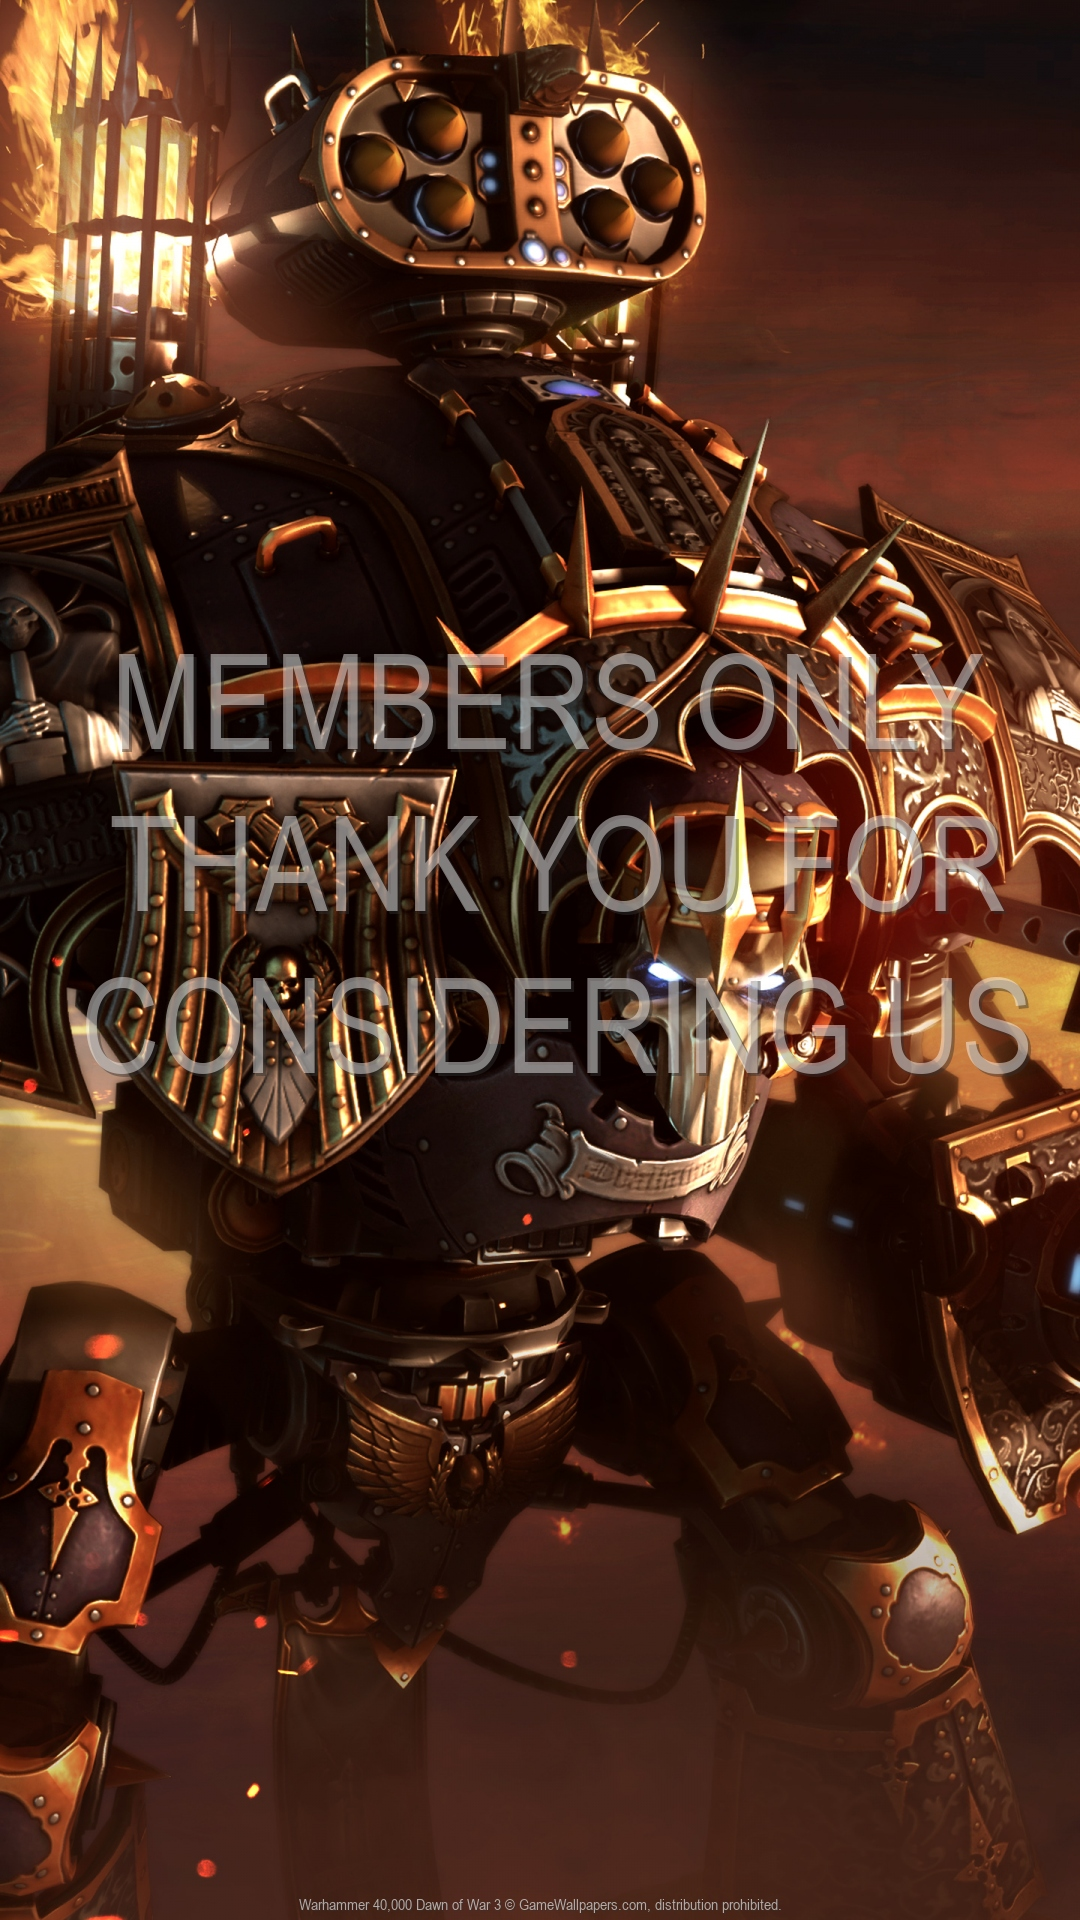 Warhammer 40,000: Dawn of War 3 1920x1080 Handy Hintergrundbild 09